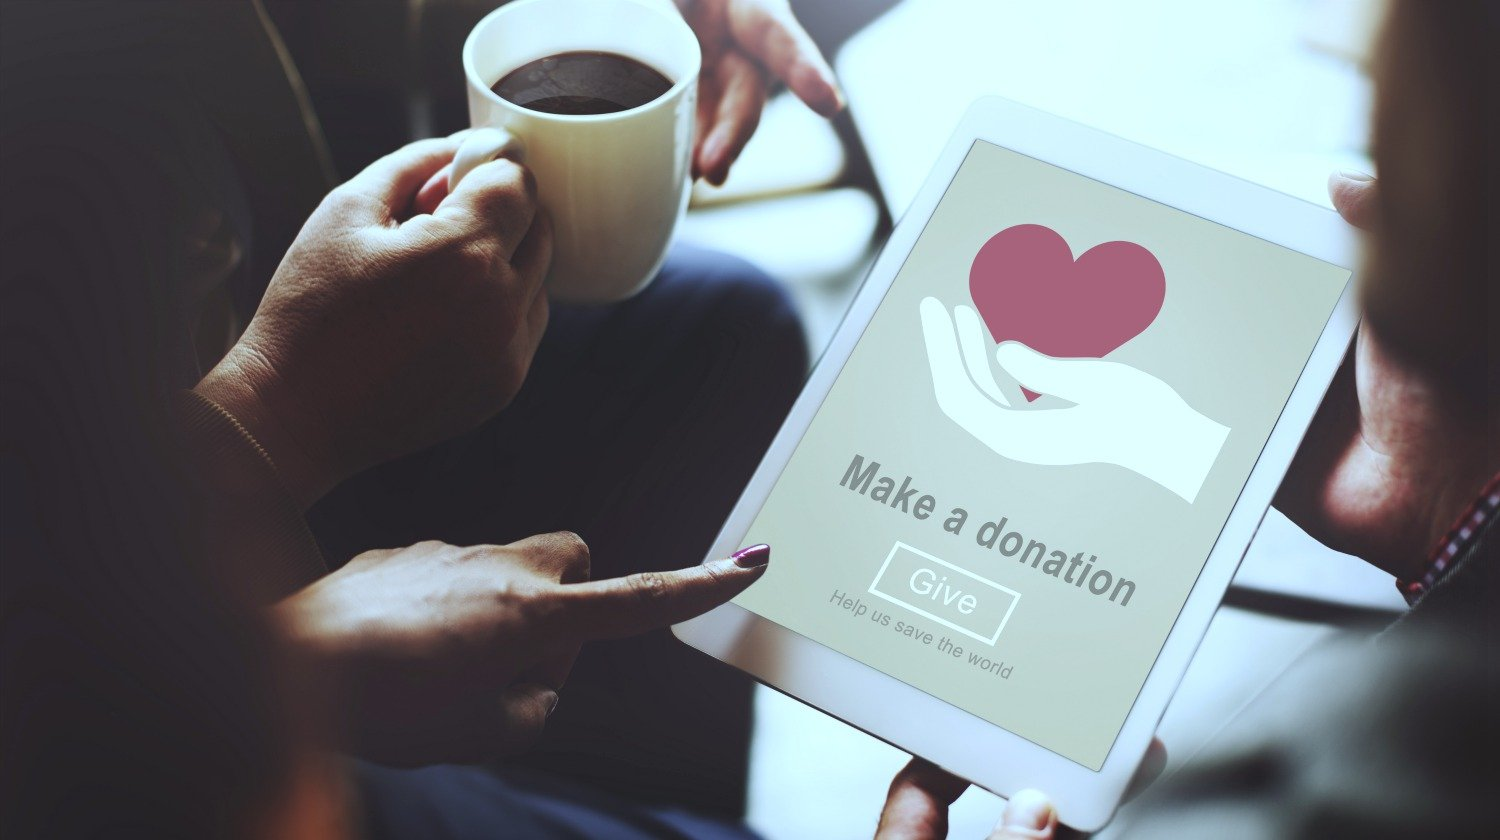 make donation on charity | Complete Guide To IRS Form 8283 | form 8283 | irs form 8283 instructions | Featured